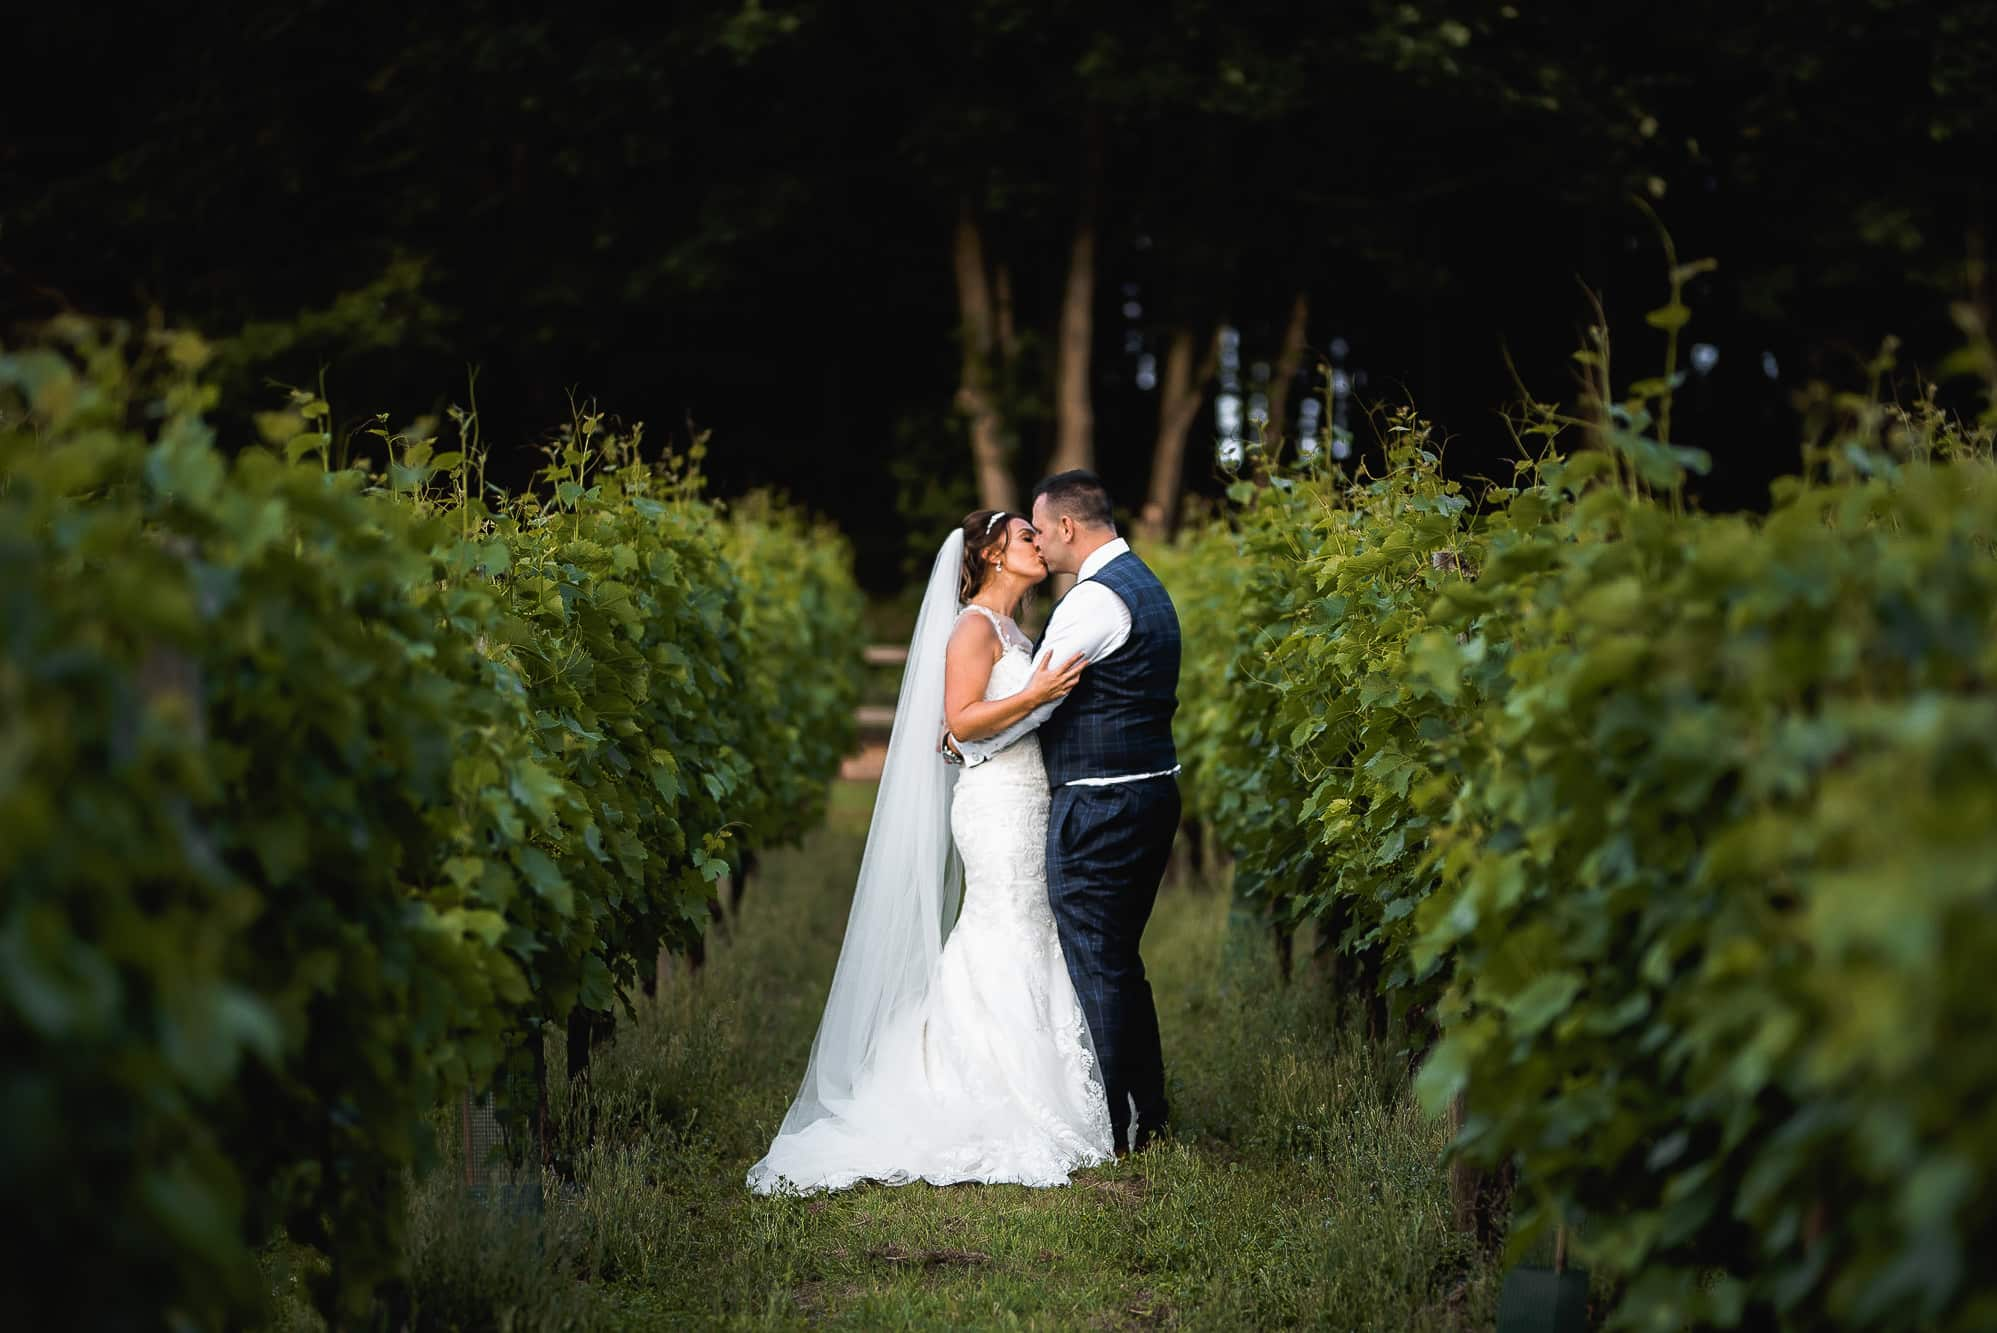 Close photo of the bride and groom in the vineyard